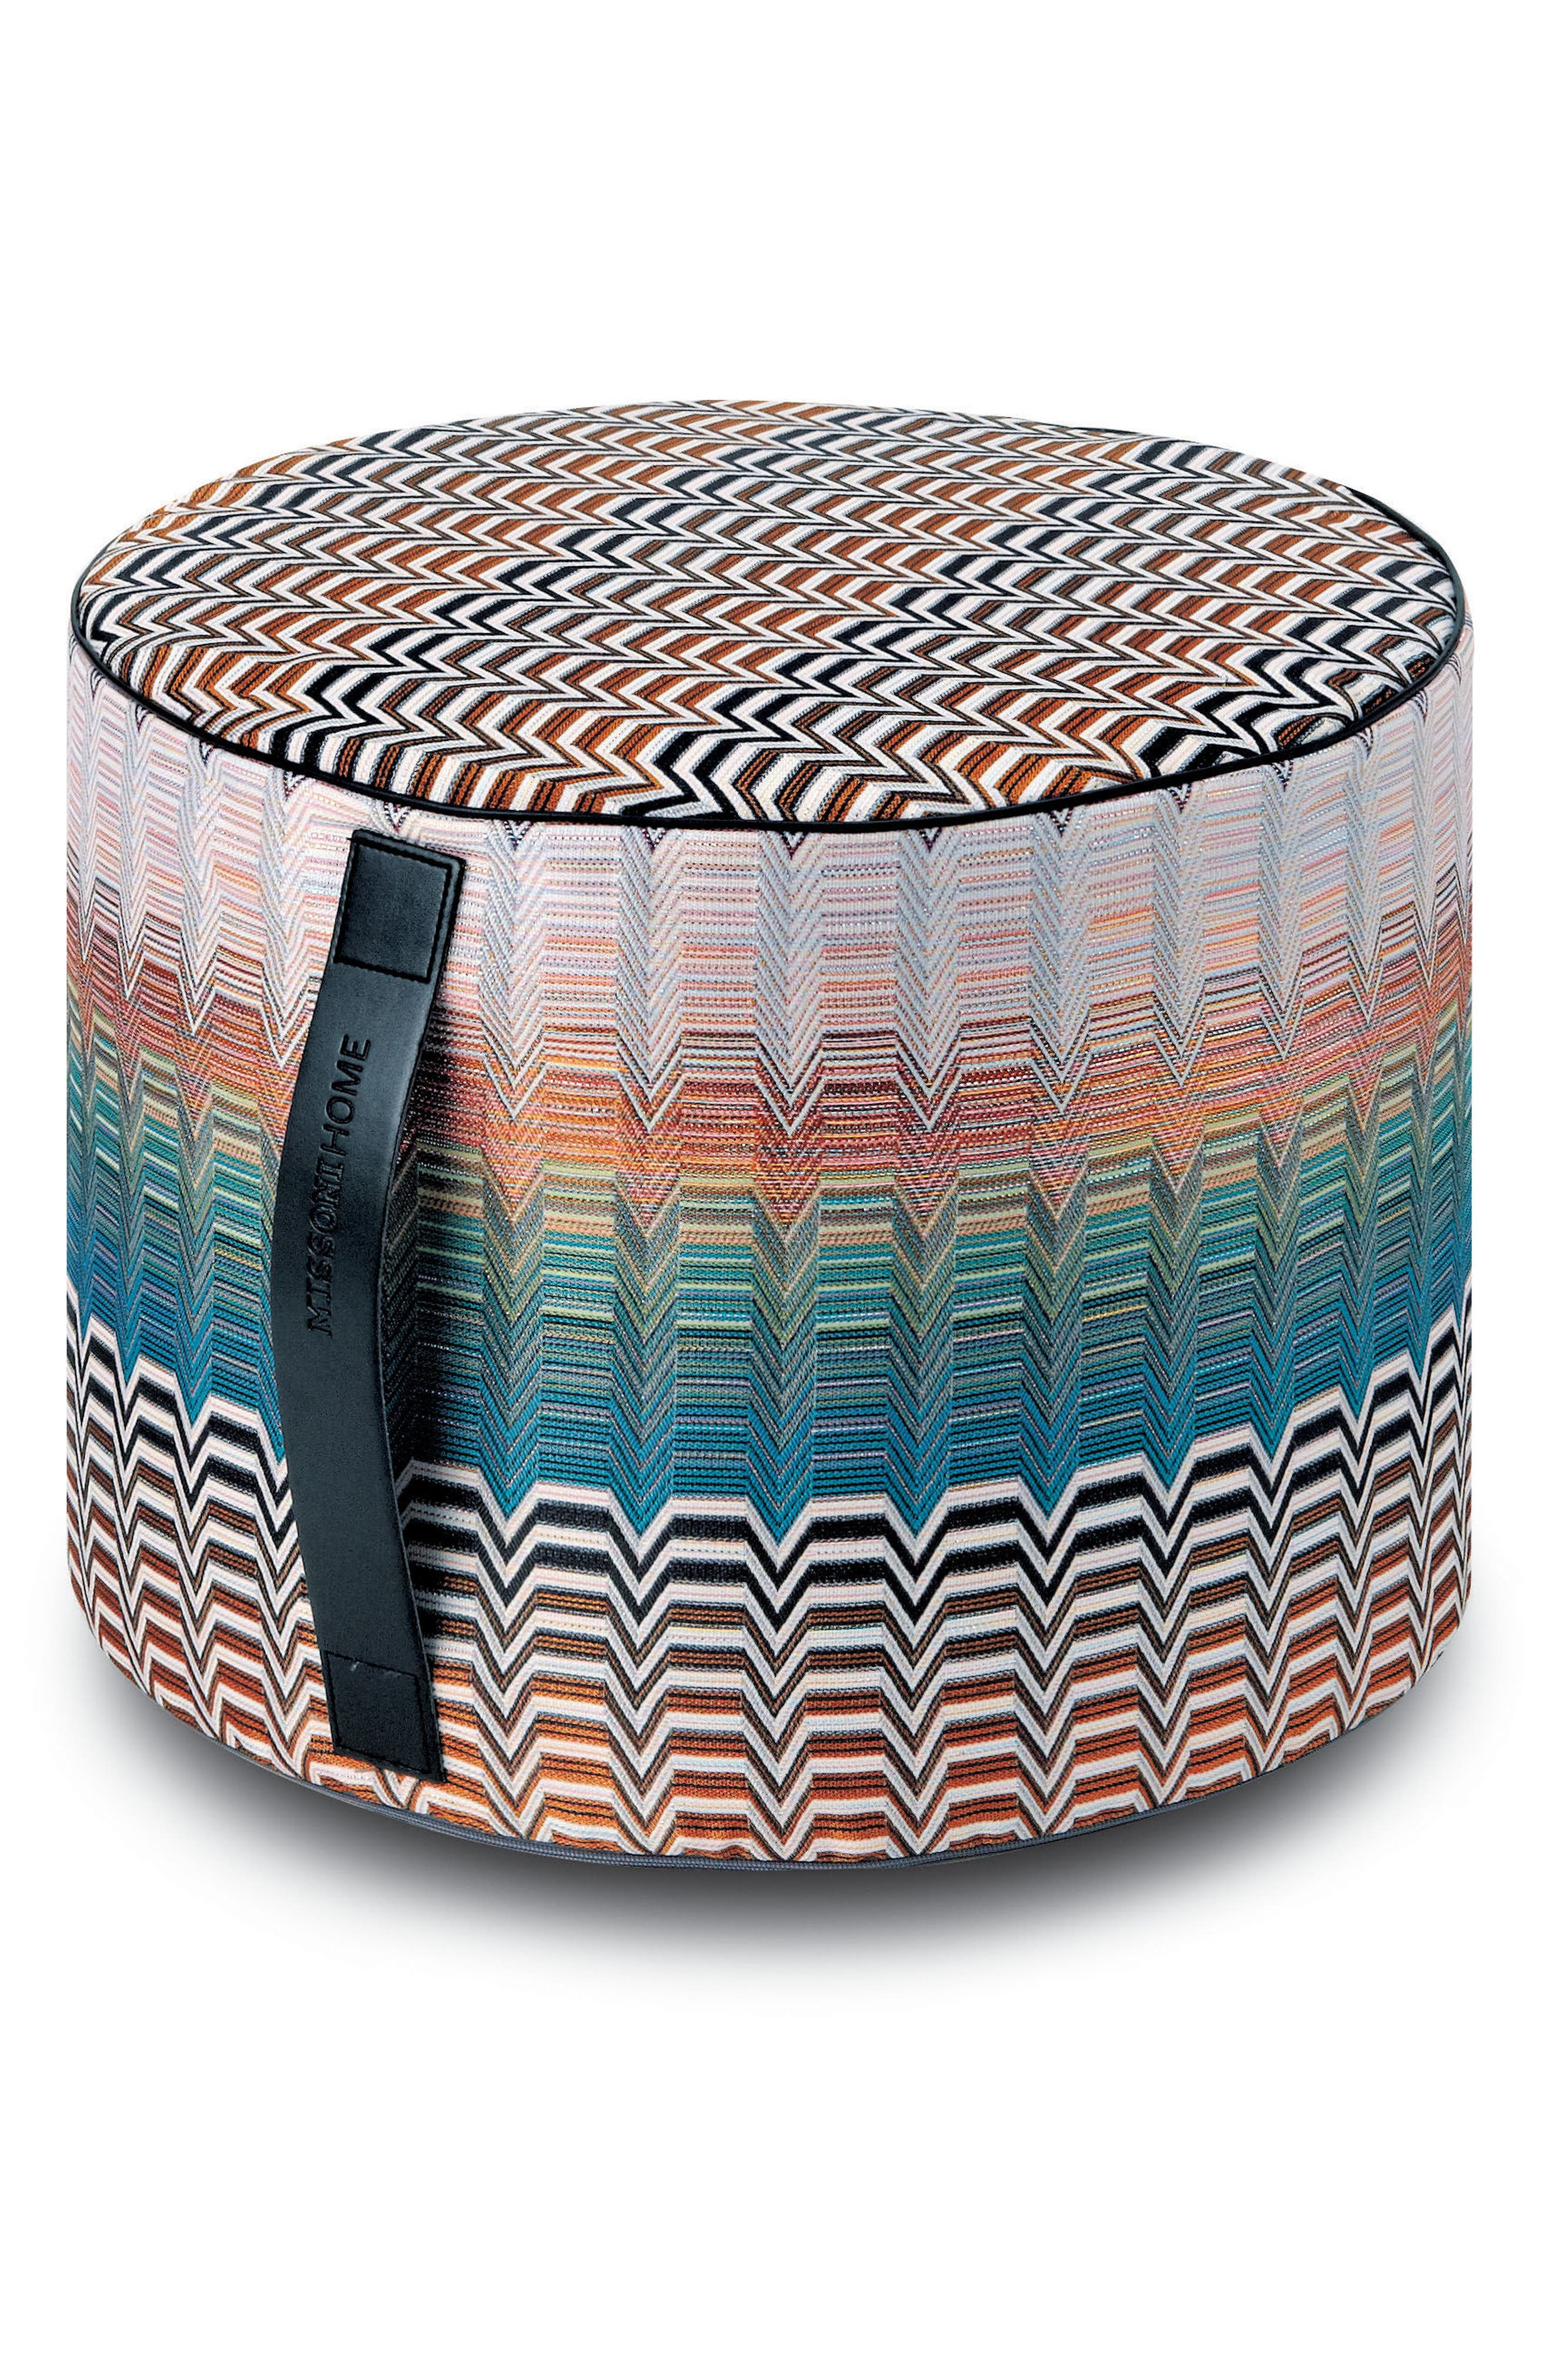 Alternate Image 1 Selected - Missoni Santa Fe Seattle Cylindrical Floor Pouf